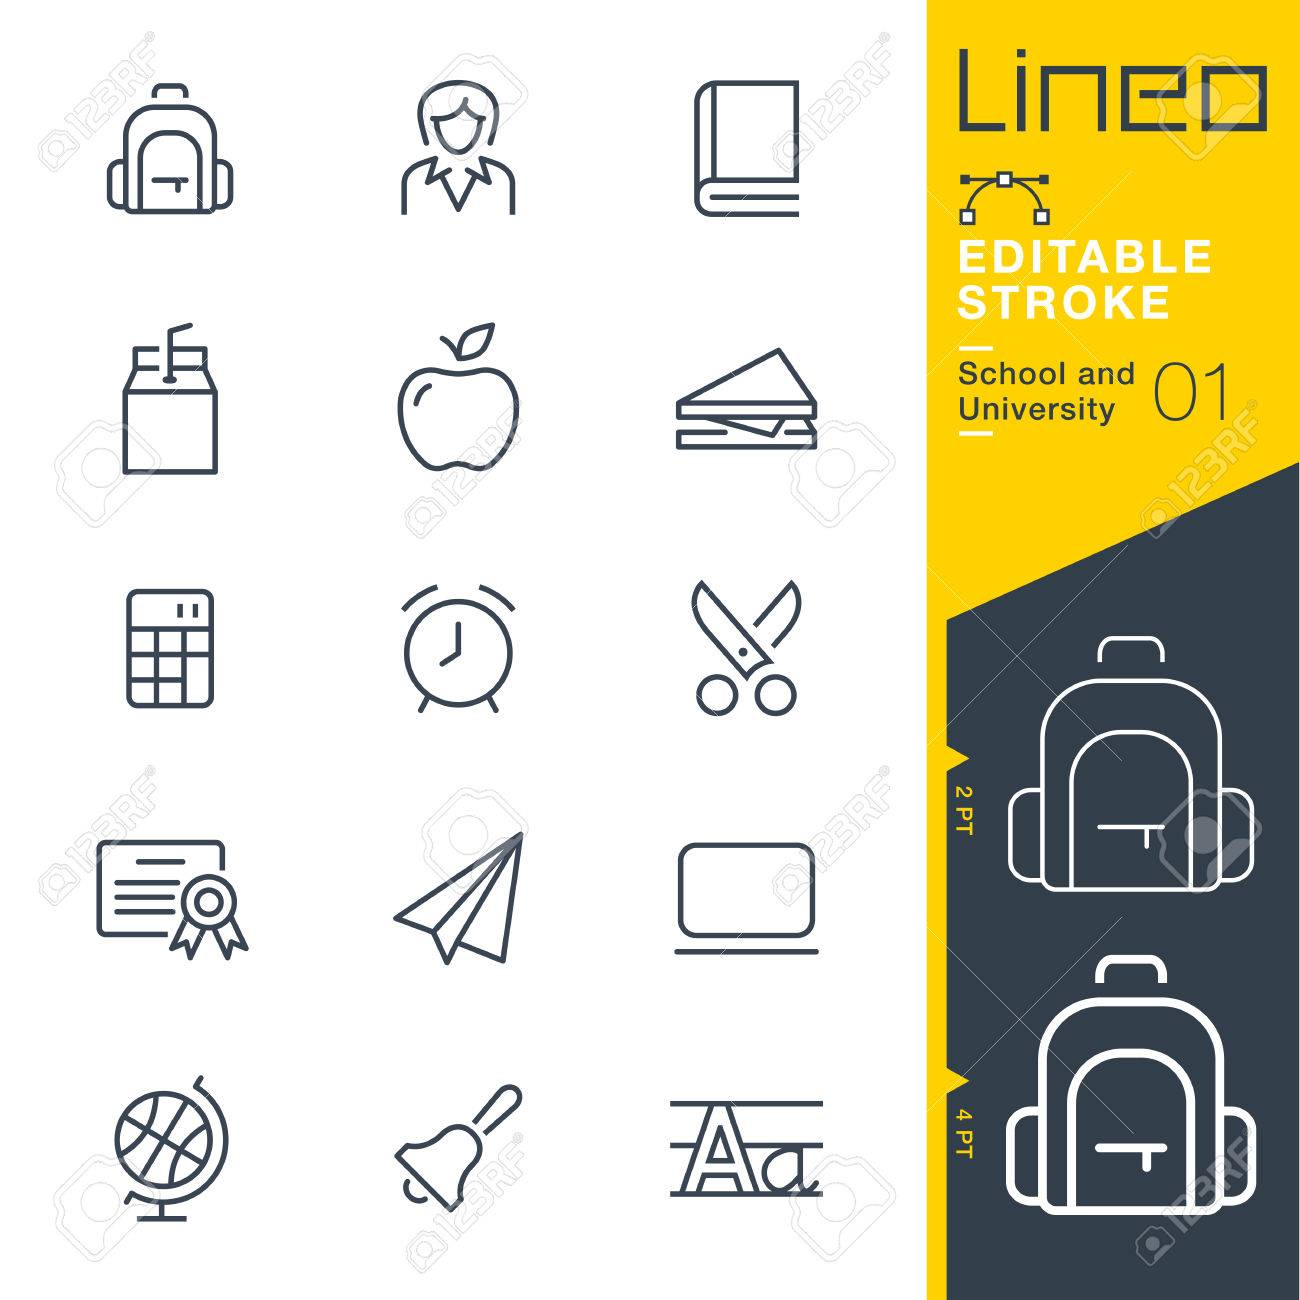 Line Editable Stroke - School and University line icon Vector Icons - Adjust stroke weight - Change to any color. - 85349453